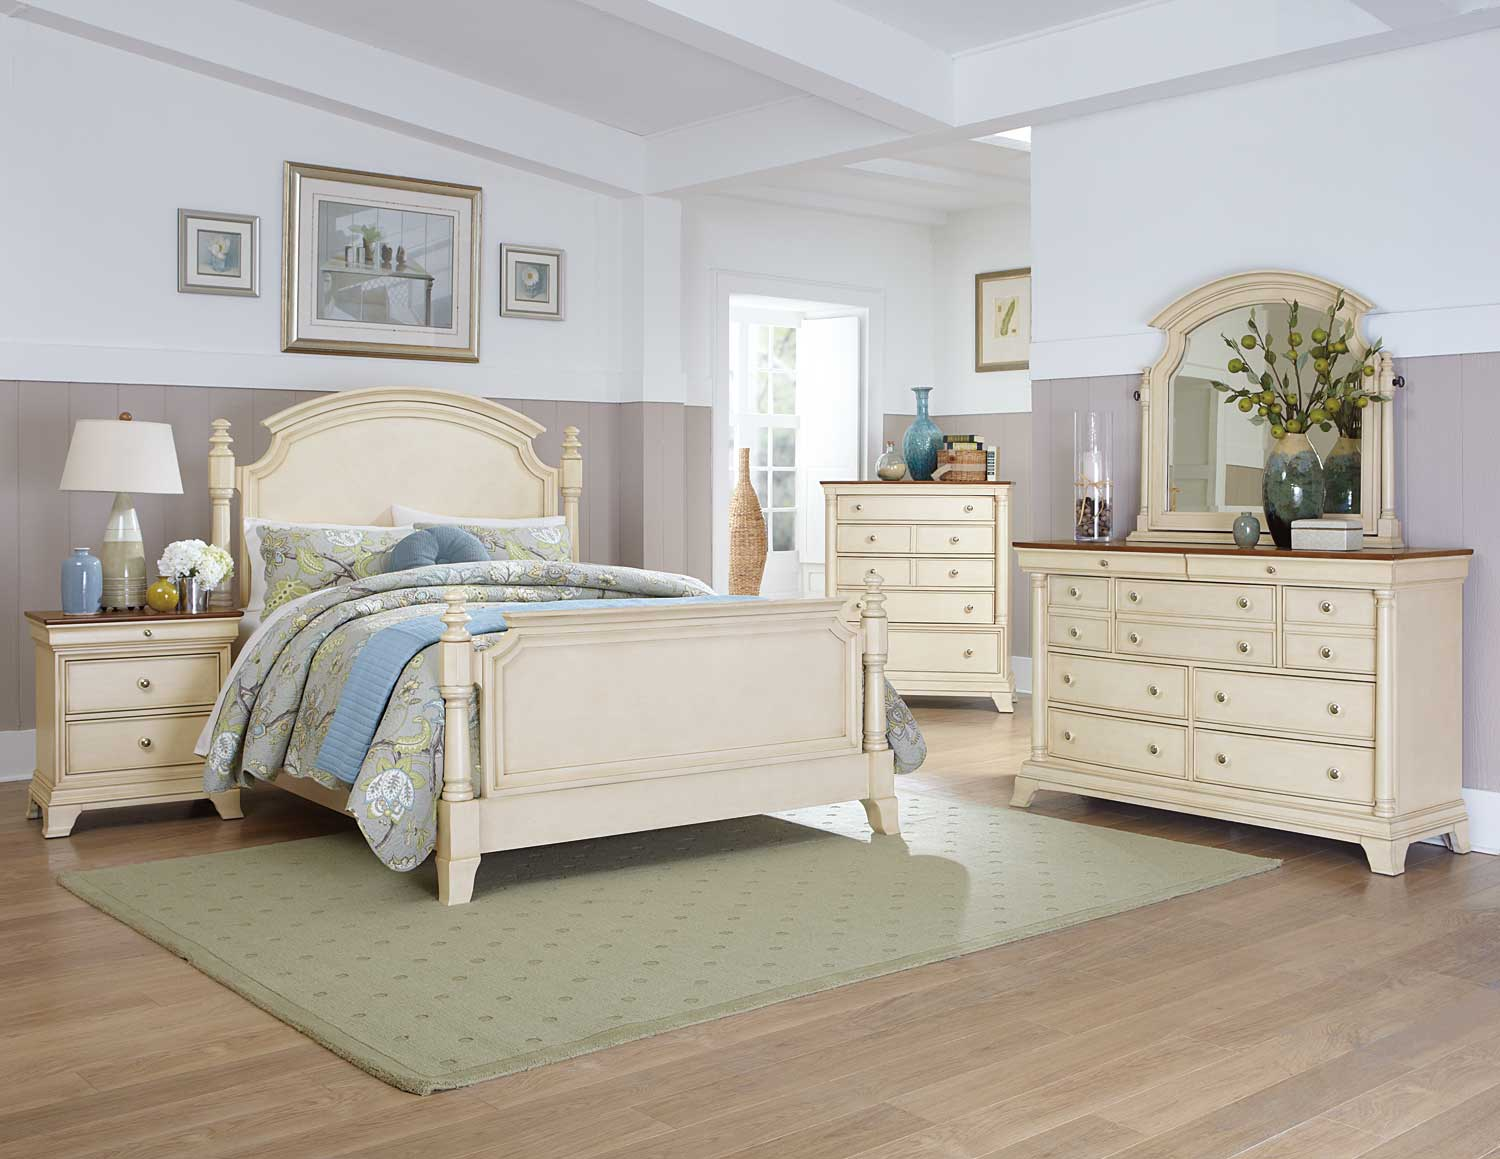 White Bedroom Furniture Of Homelegance Inglewood Ii Bedroom Set White B1402w Bed